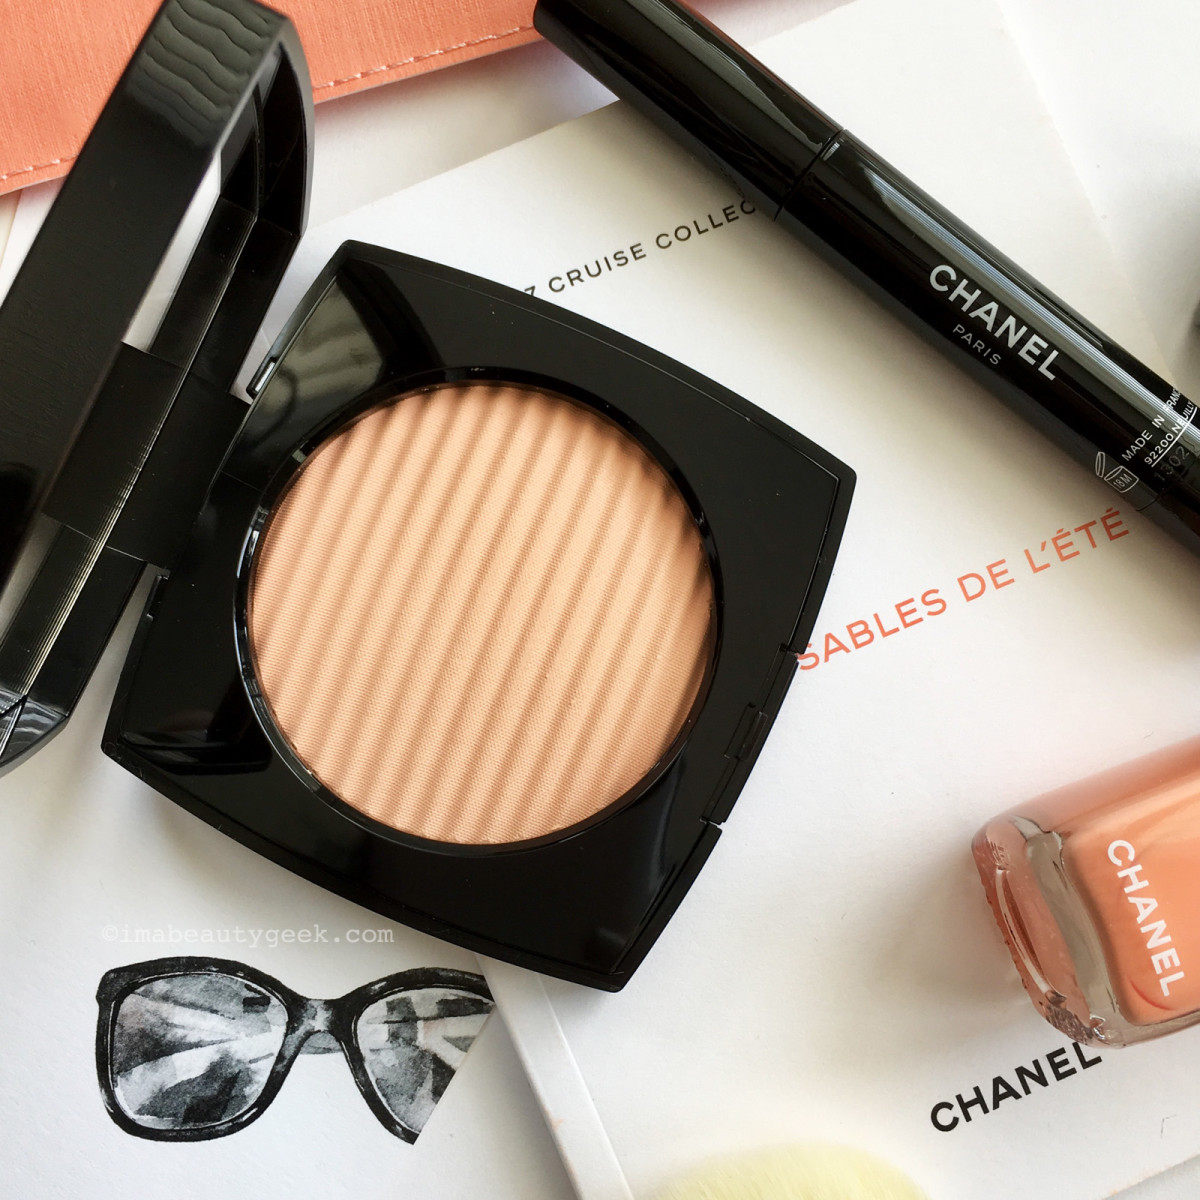 CHANEL Cruise Collection Summer 2017: Les Beiges Healthy Glow Luminous Colour in Light